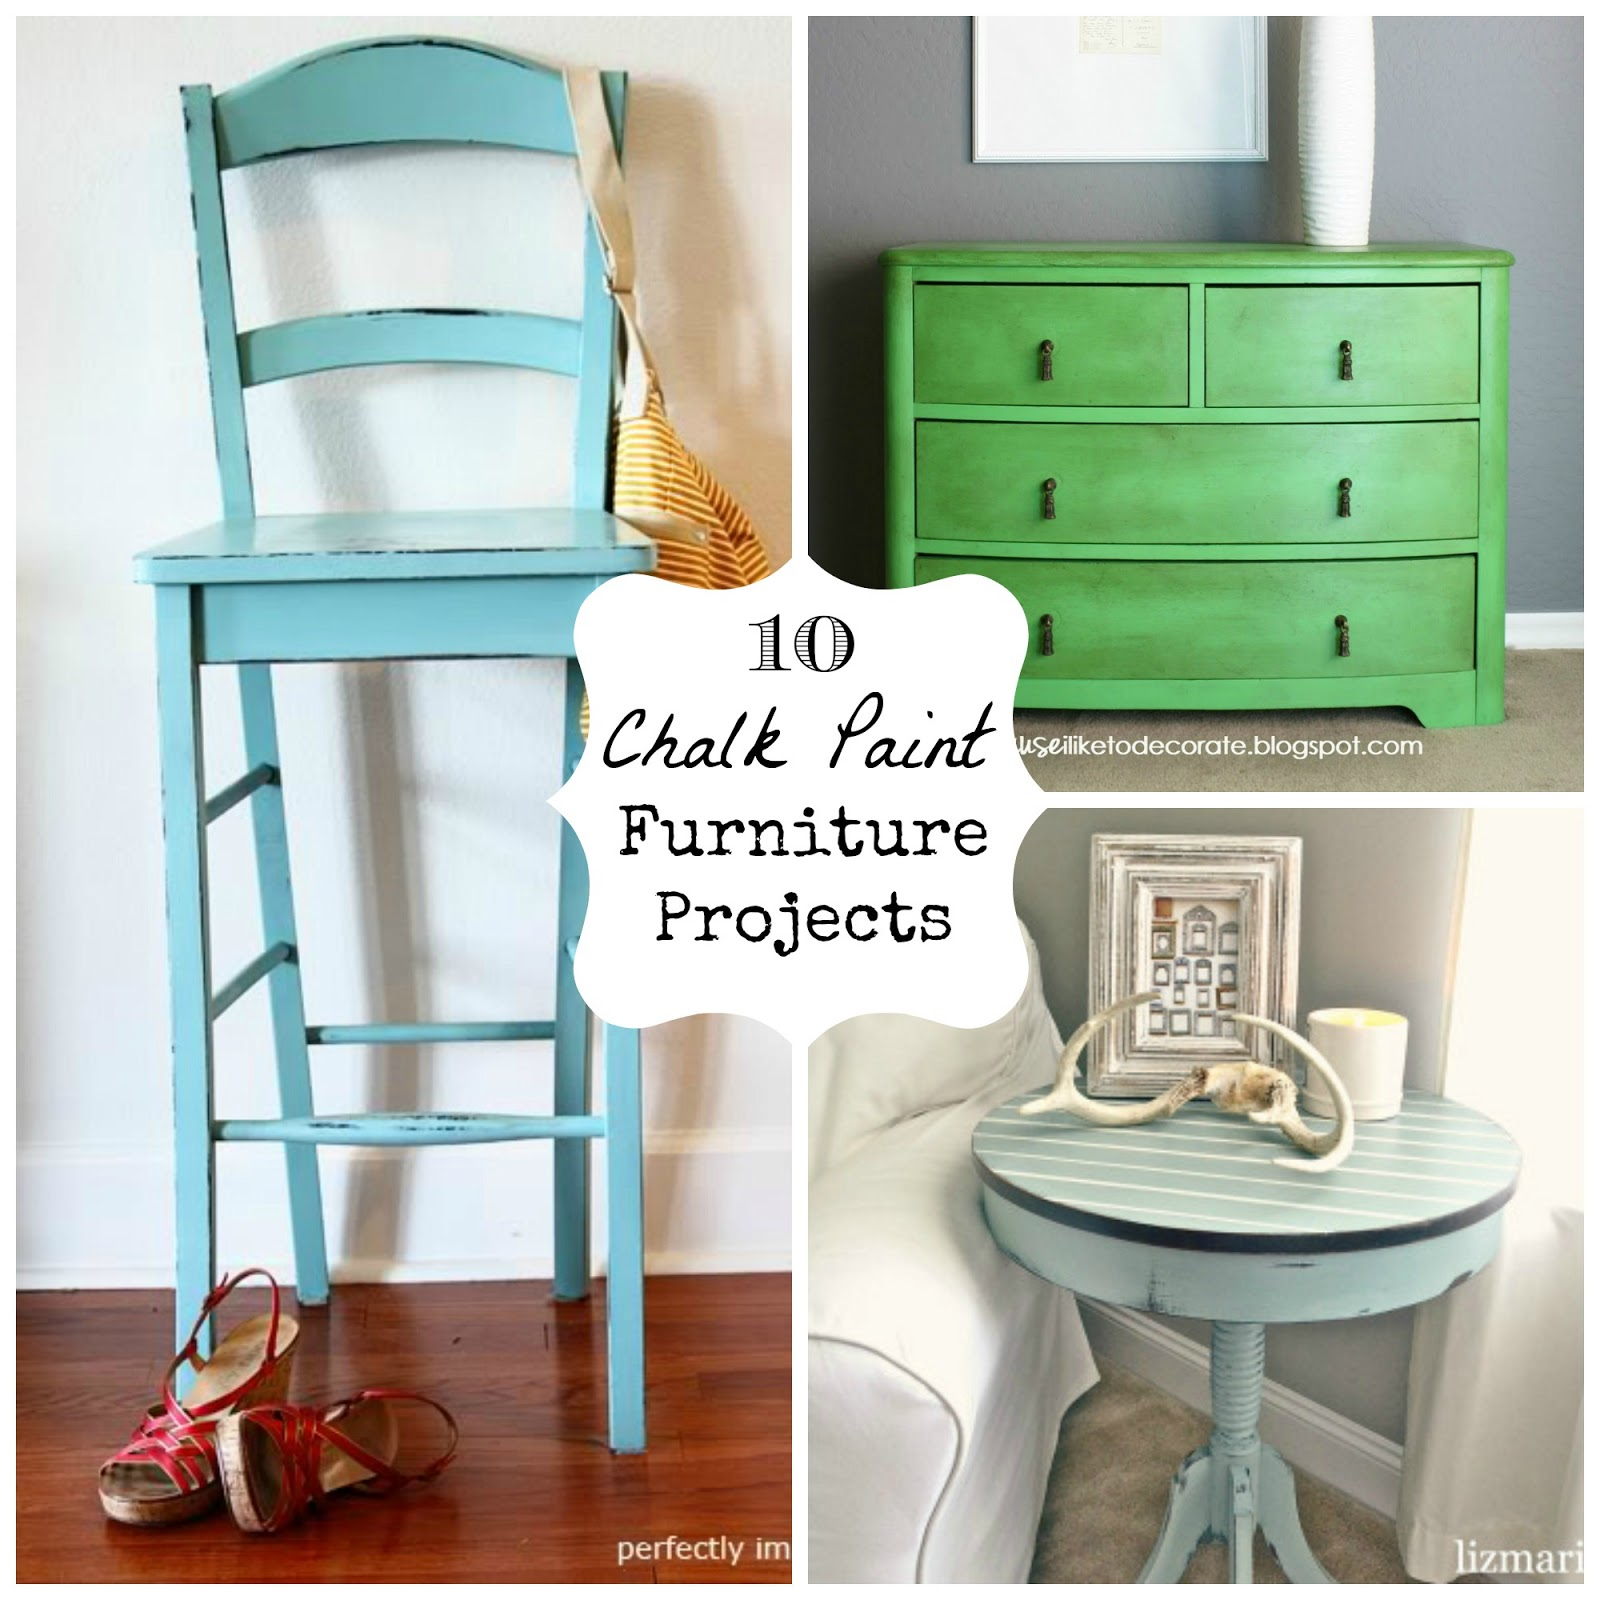 Chalk Paint Chairs 10 Chalk Paint Furniture Projects Fun Home Things